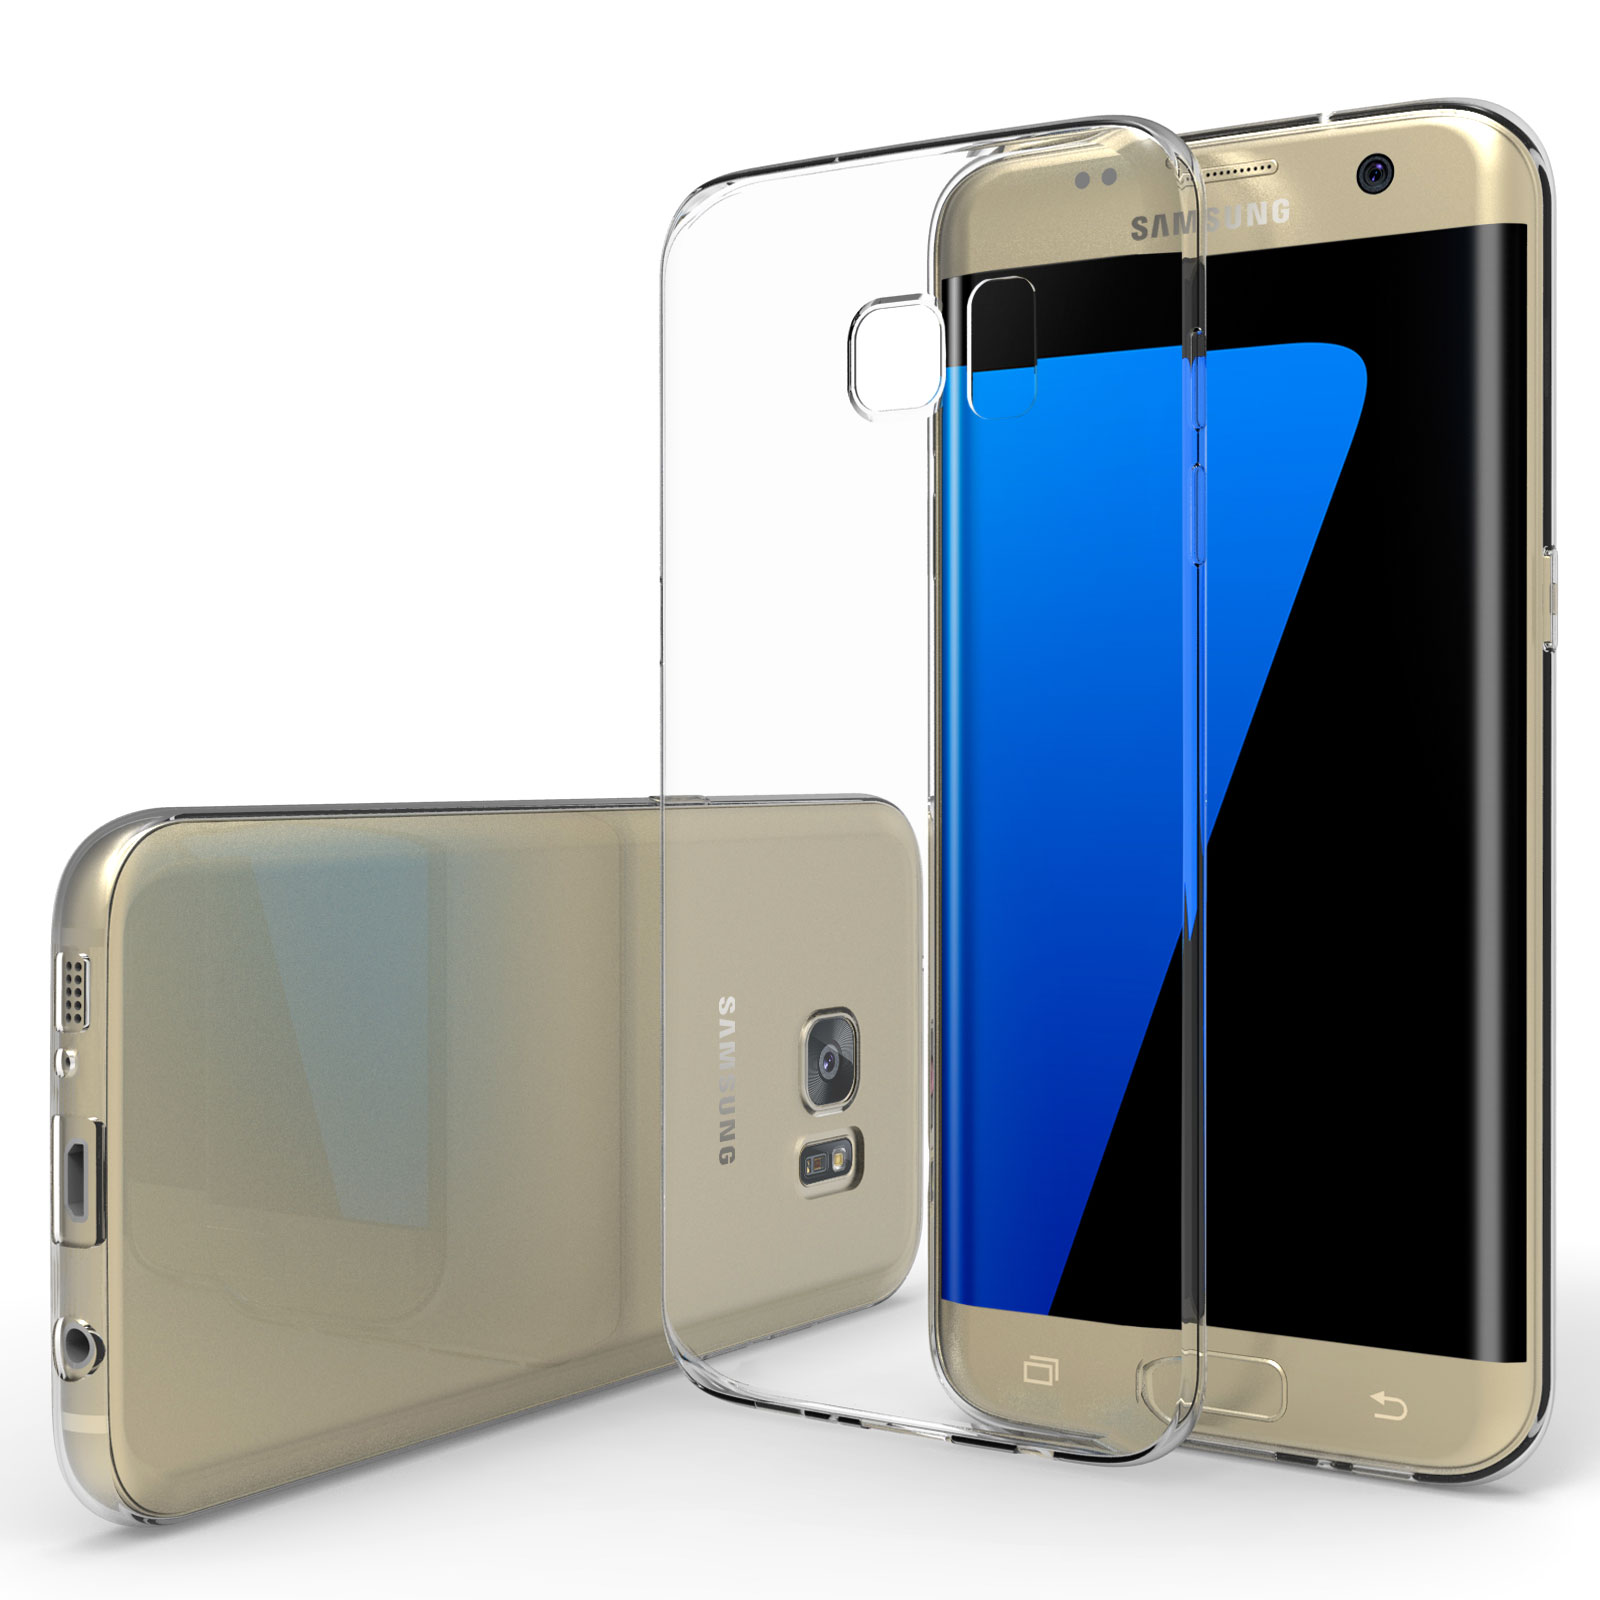 Samsung Galaxy S7 Edge Cases And Covers Spigen Carbon Case Yousave Accessories Ultra Thin Clear Gel